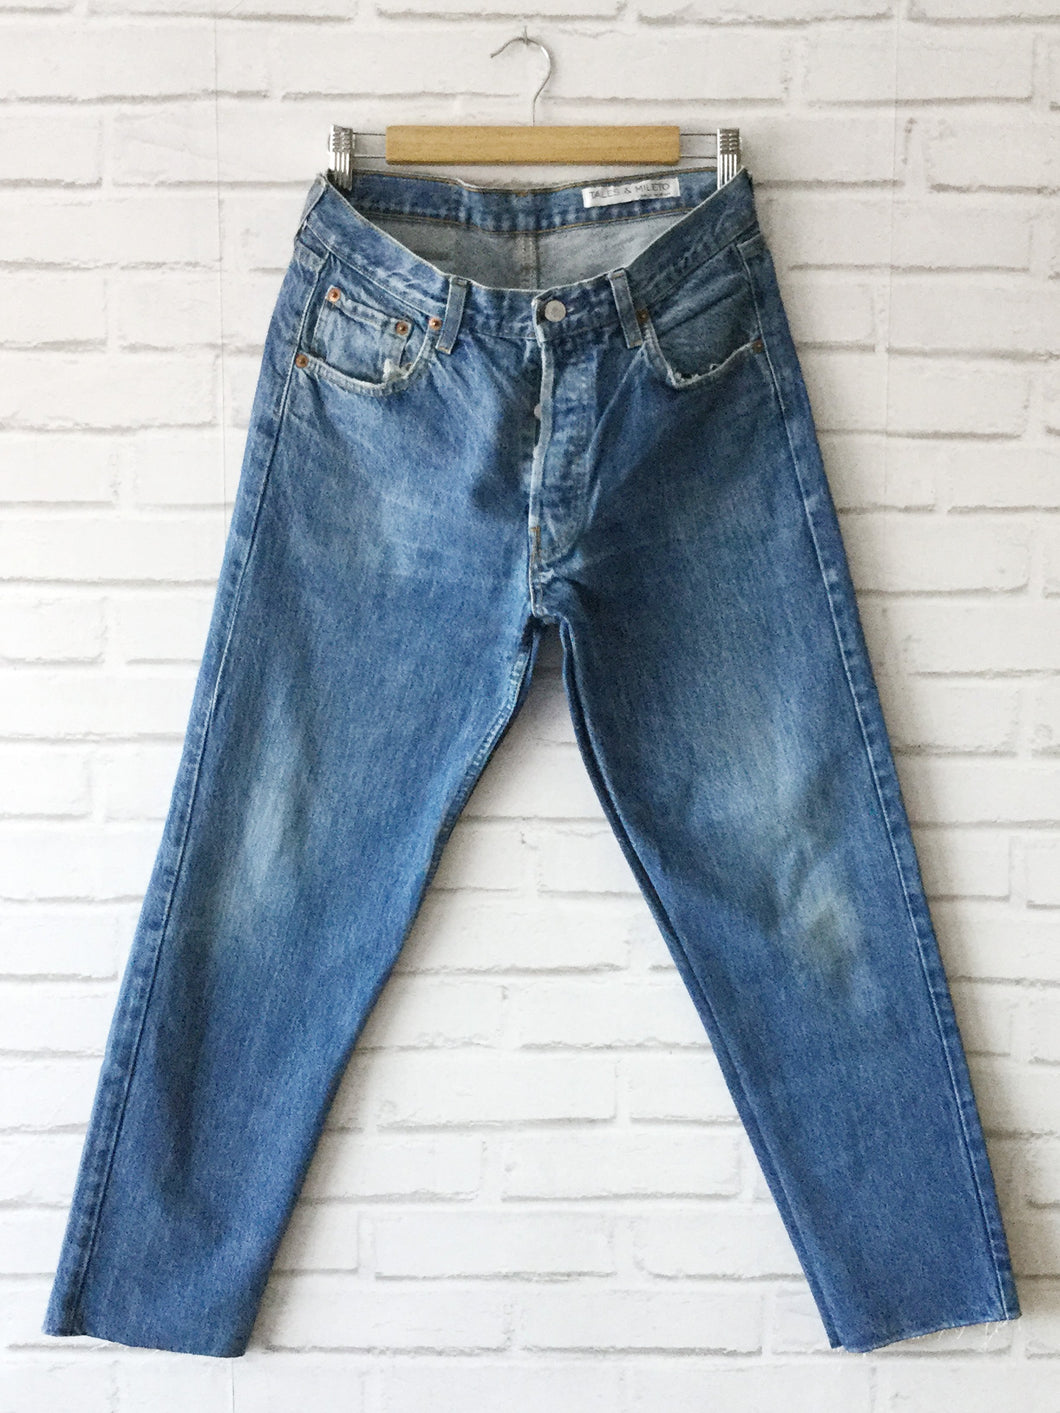 Reworked Levis 501 - Washed Blue